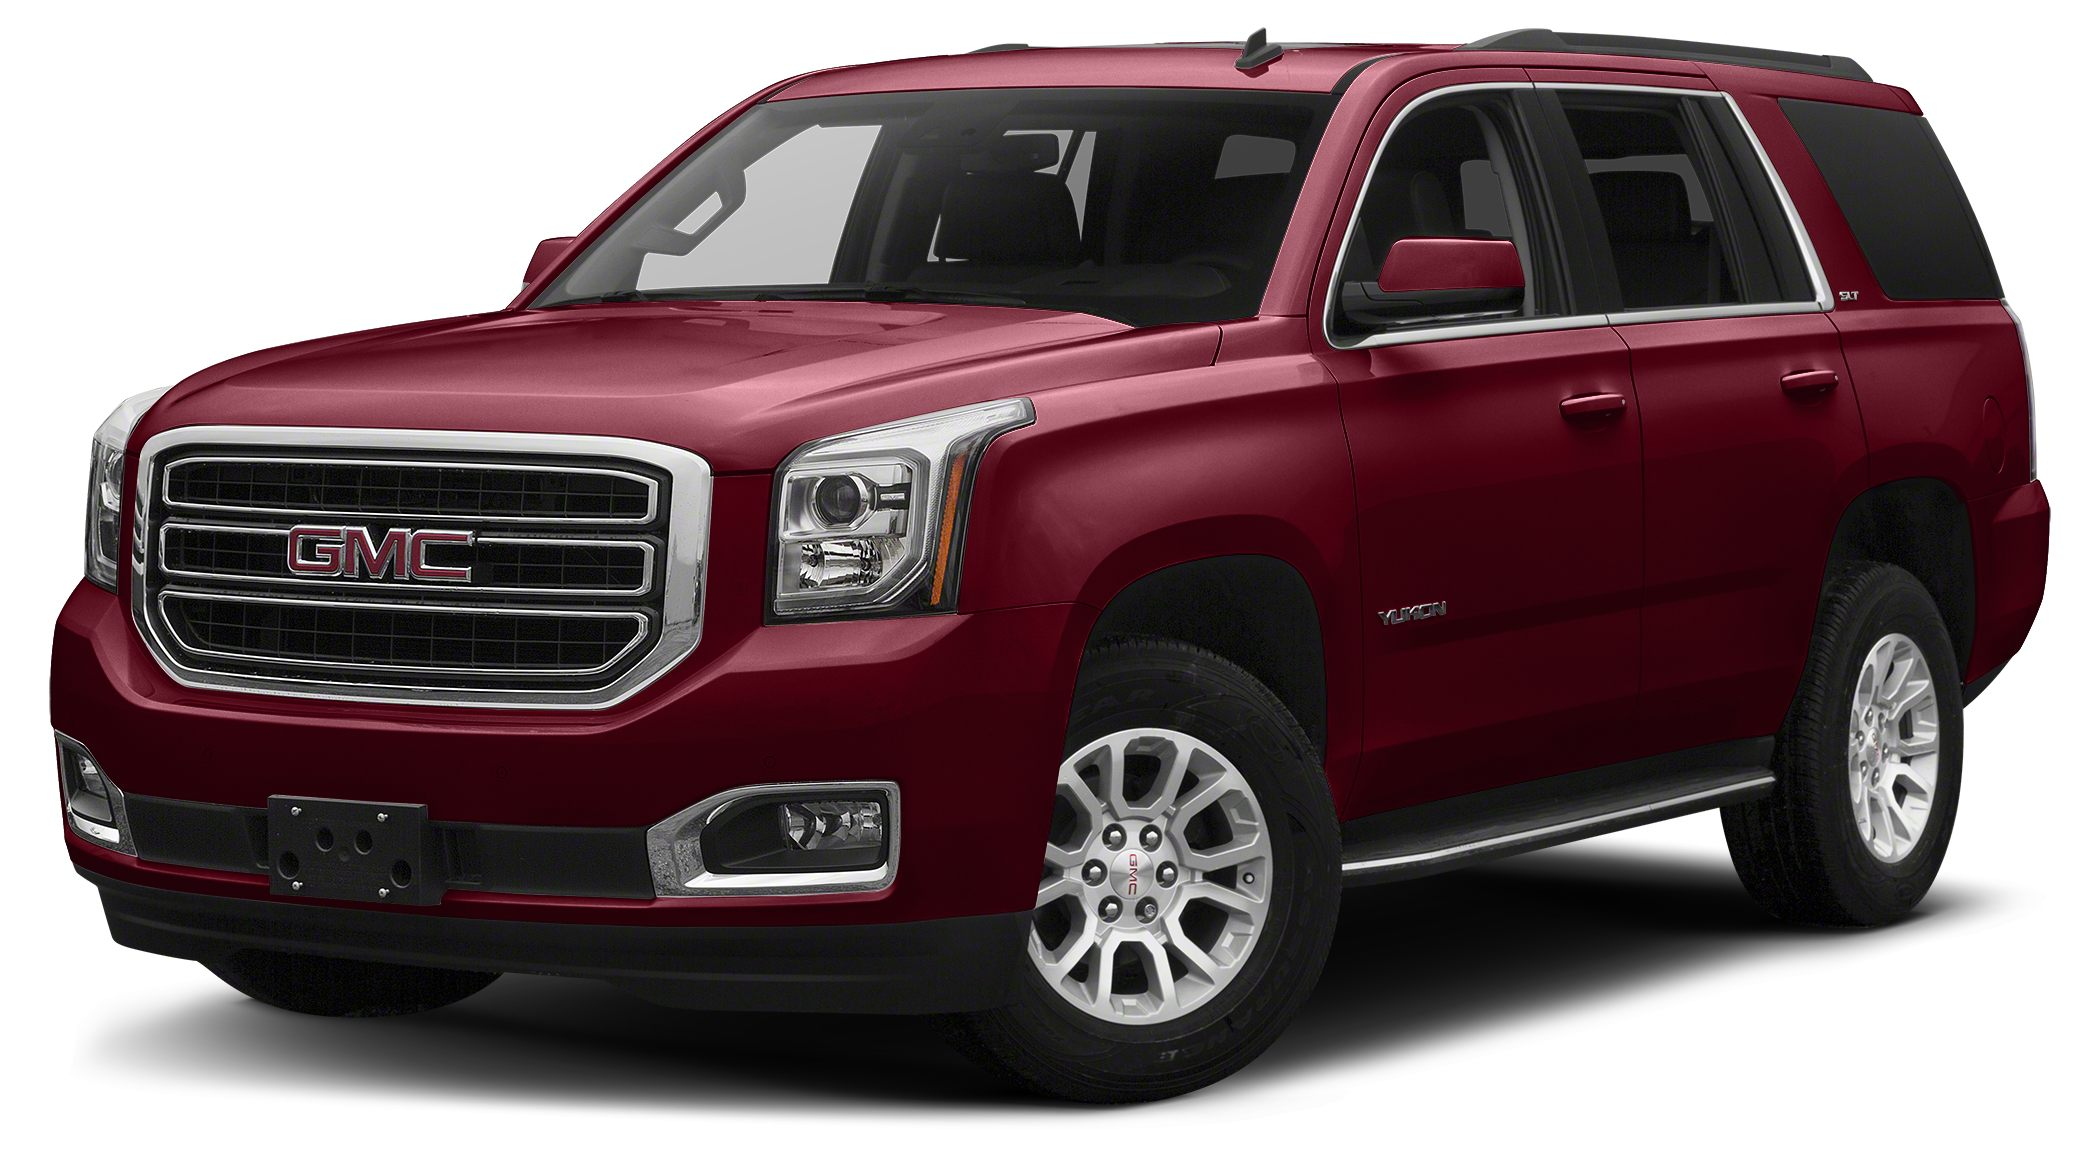 2017 GMC Yukon SLT Miles 5Color Crimson Red Tintcoat Stock GH328650 VIN 1GKS1BKC5HR328650